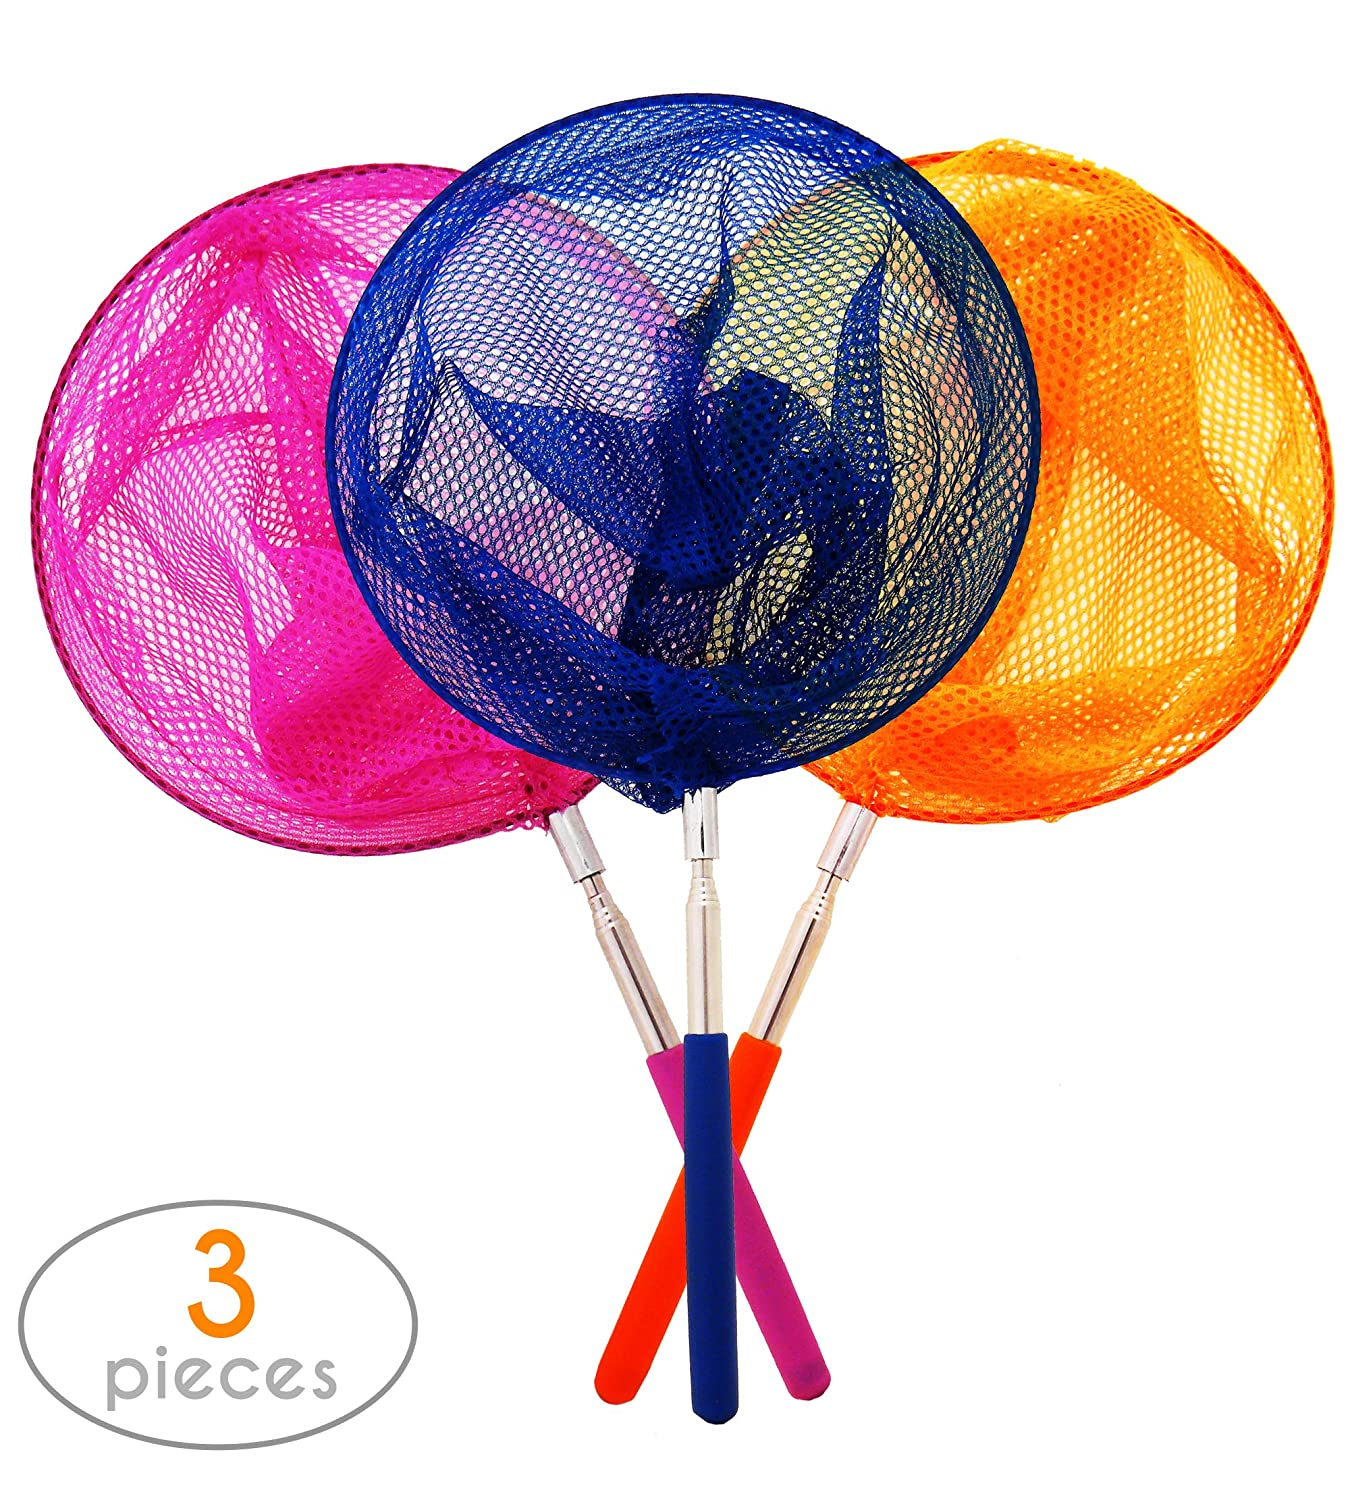 """Telescopic Kids Butterfly and Bug Net Set of 3, Extendable up to 34"""" by Stone&Clark. Multifunctional Catching Set for Outdoor Activities. Easy Storage, Good for All Kinds of Insects and Small Fish."""